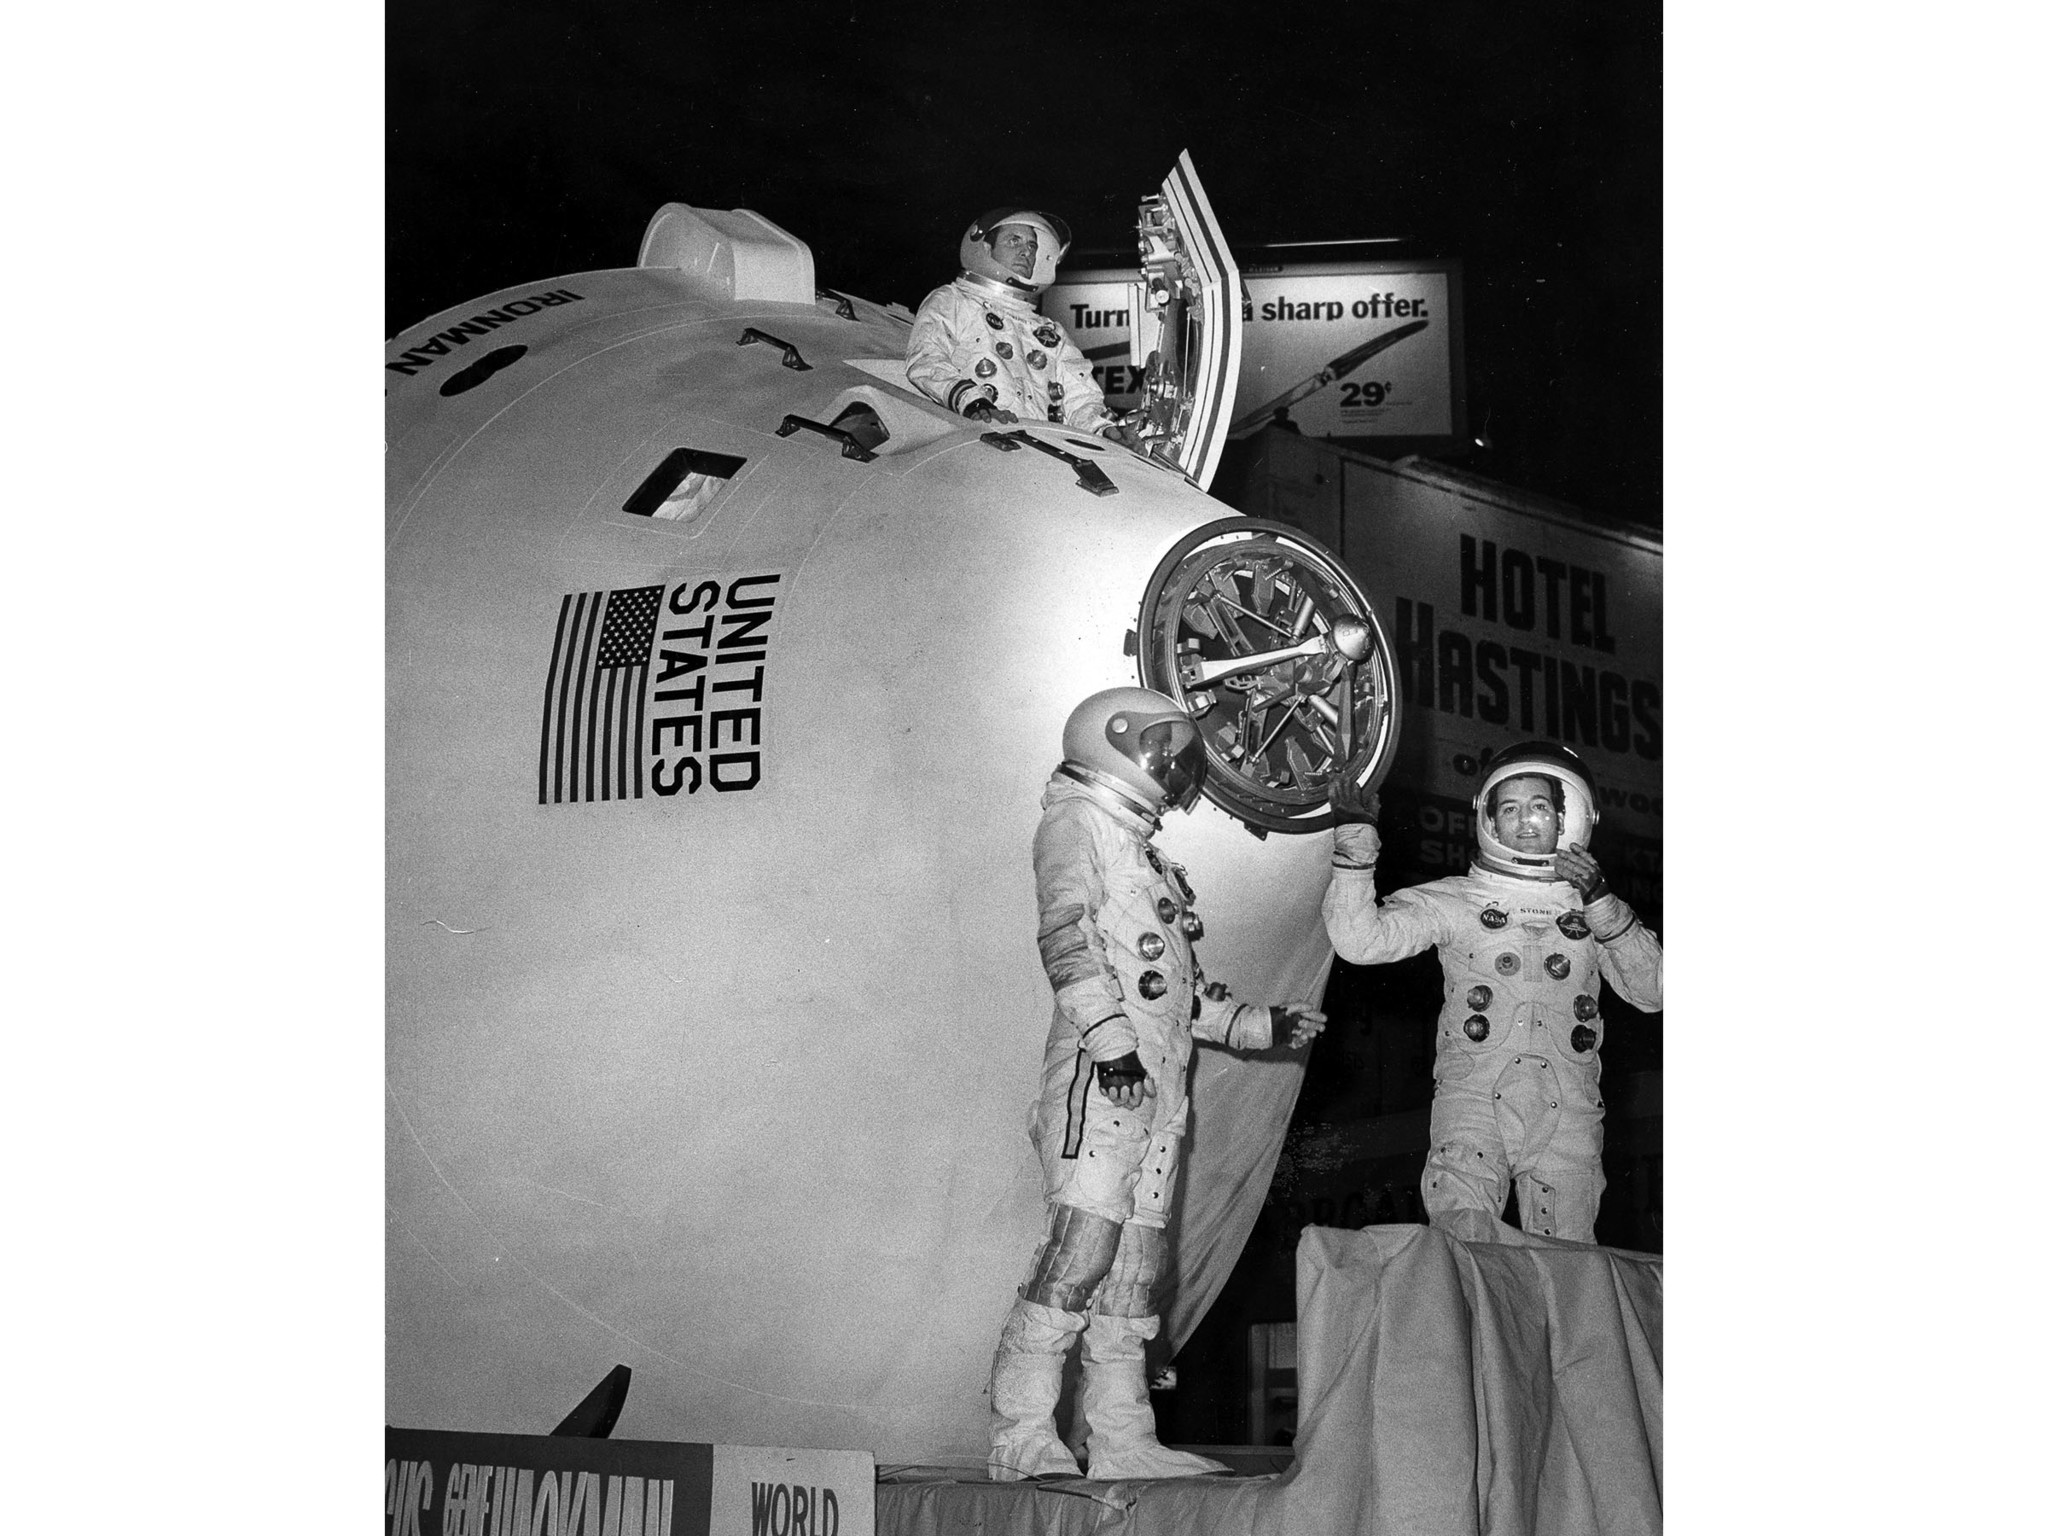 Nov. 26, 1969: Apollo capsule inspired float entitled